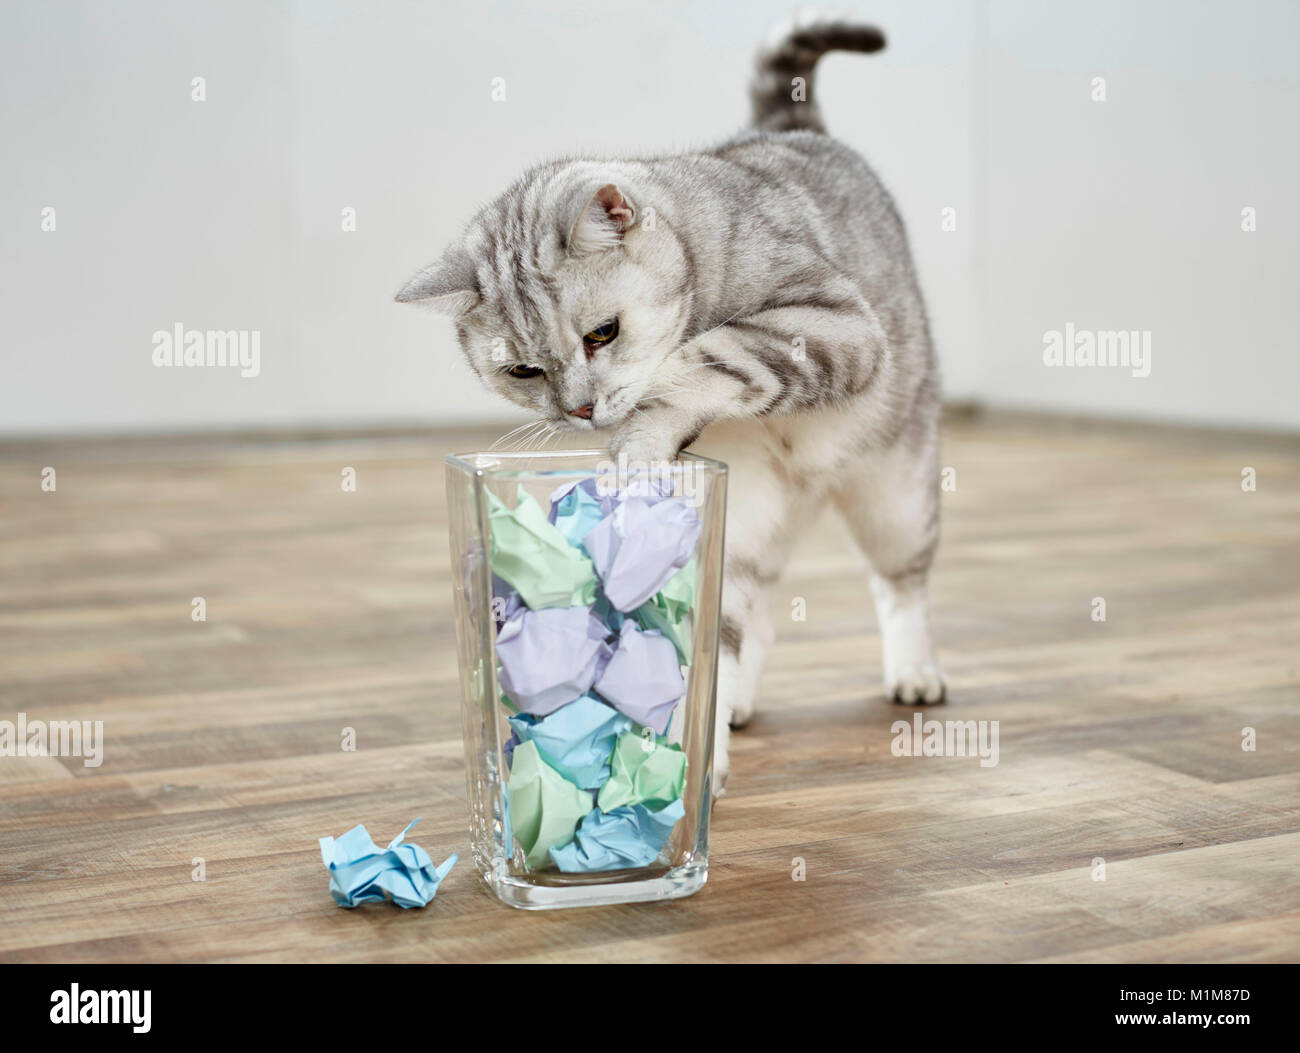 British Shorthair cat. Tabby adult angling a crumbled paper out from a glass container. Germany - Stock Image